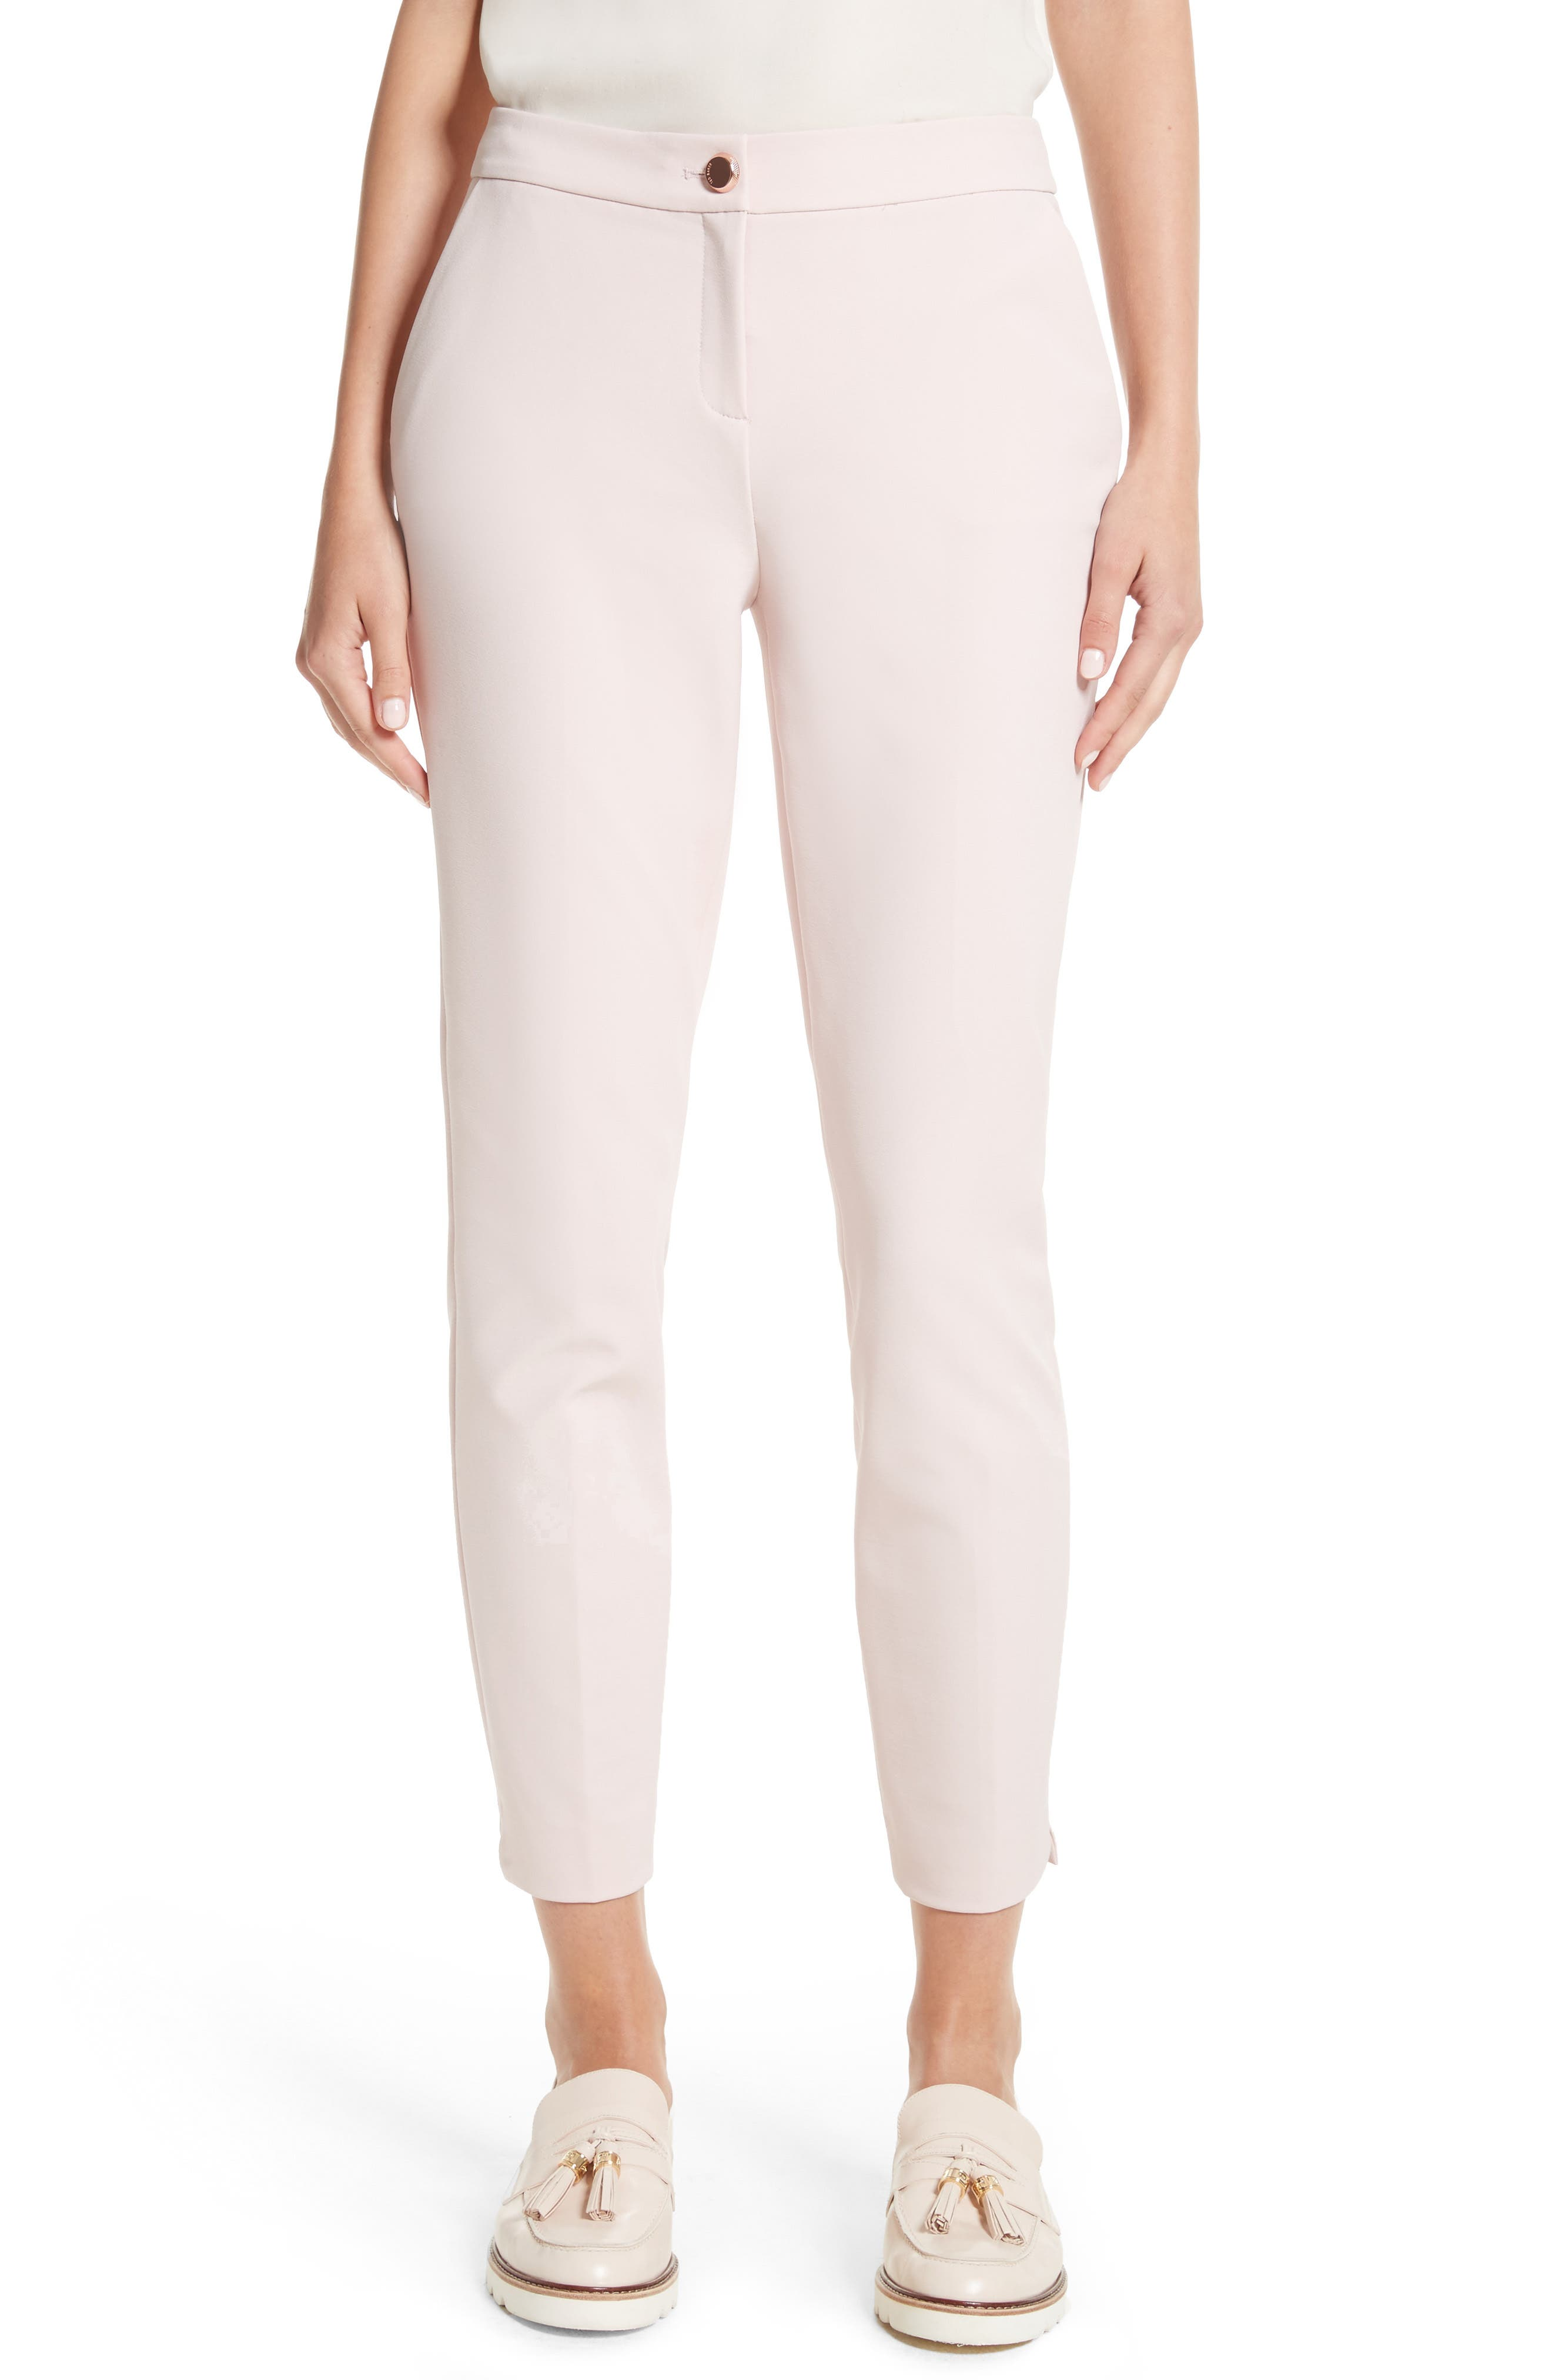 Suria Tailored Ankle Grazer Trousers,                             Main thumbnail 1, color,                             Pale Pink